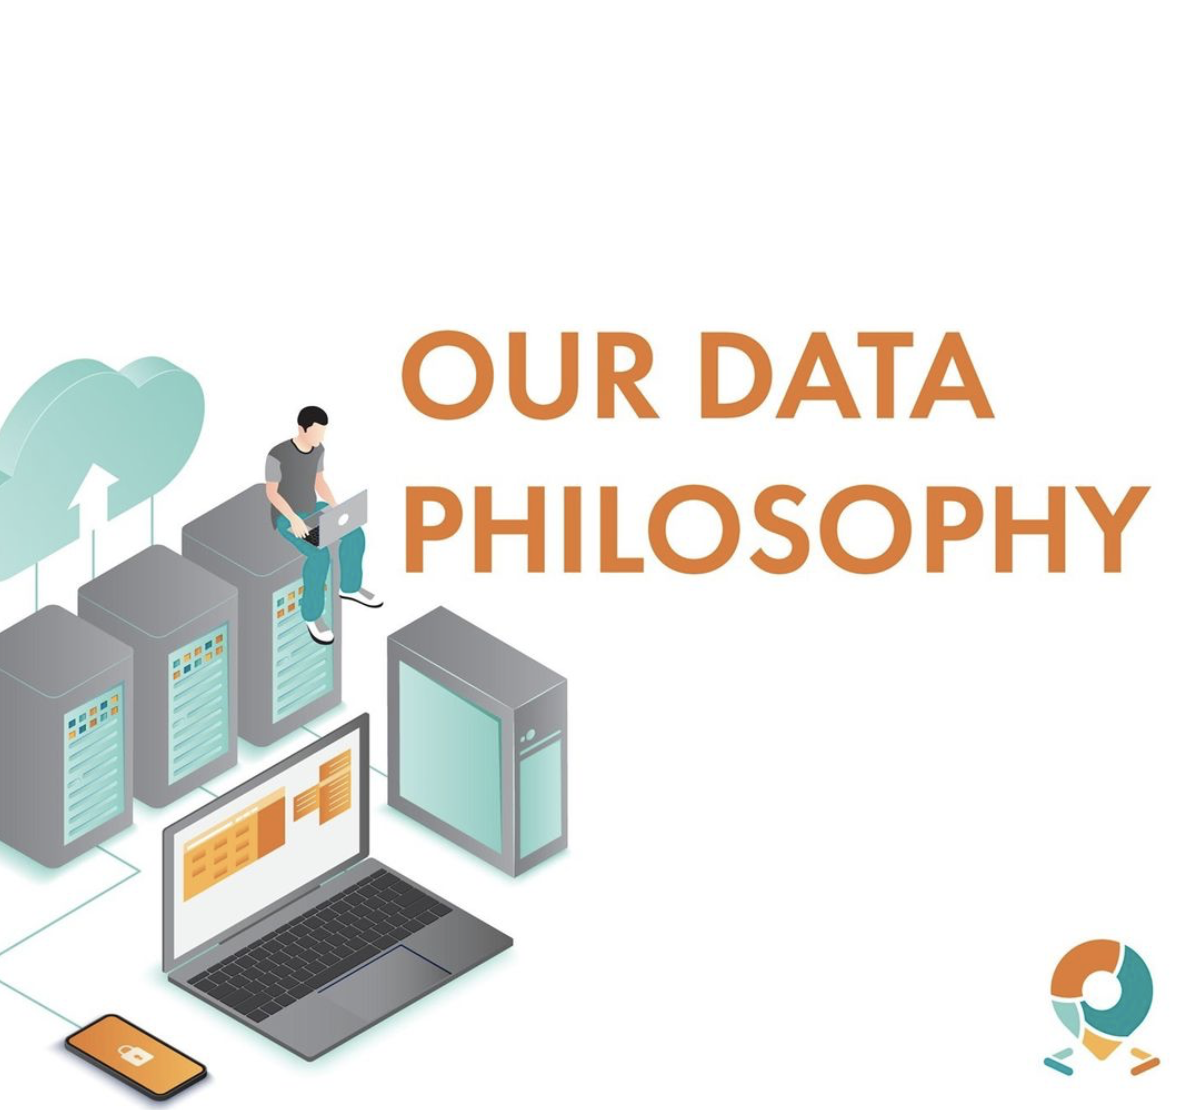 Our Data Philosophy - Using AI For Good